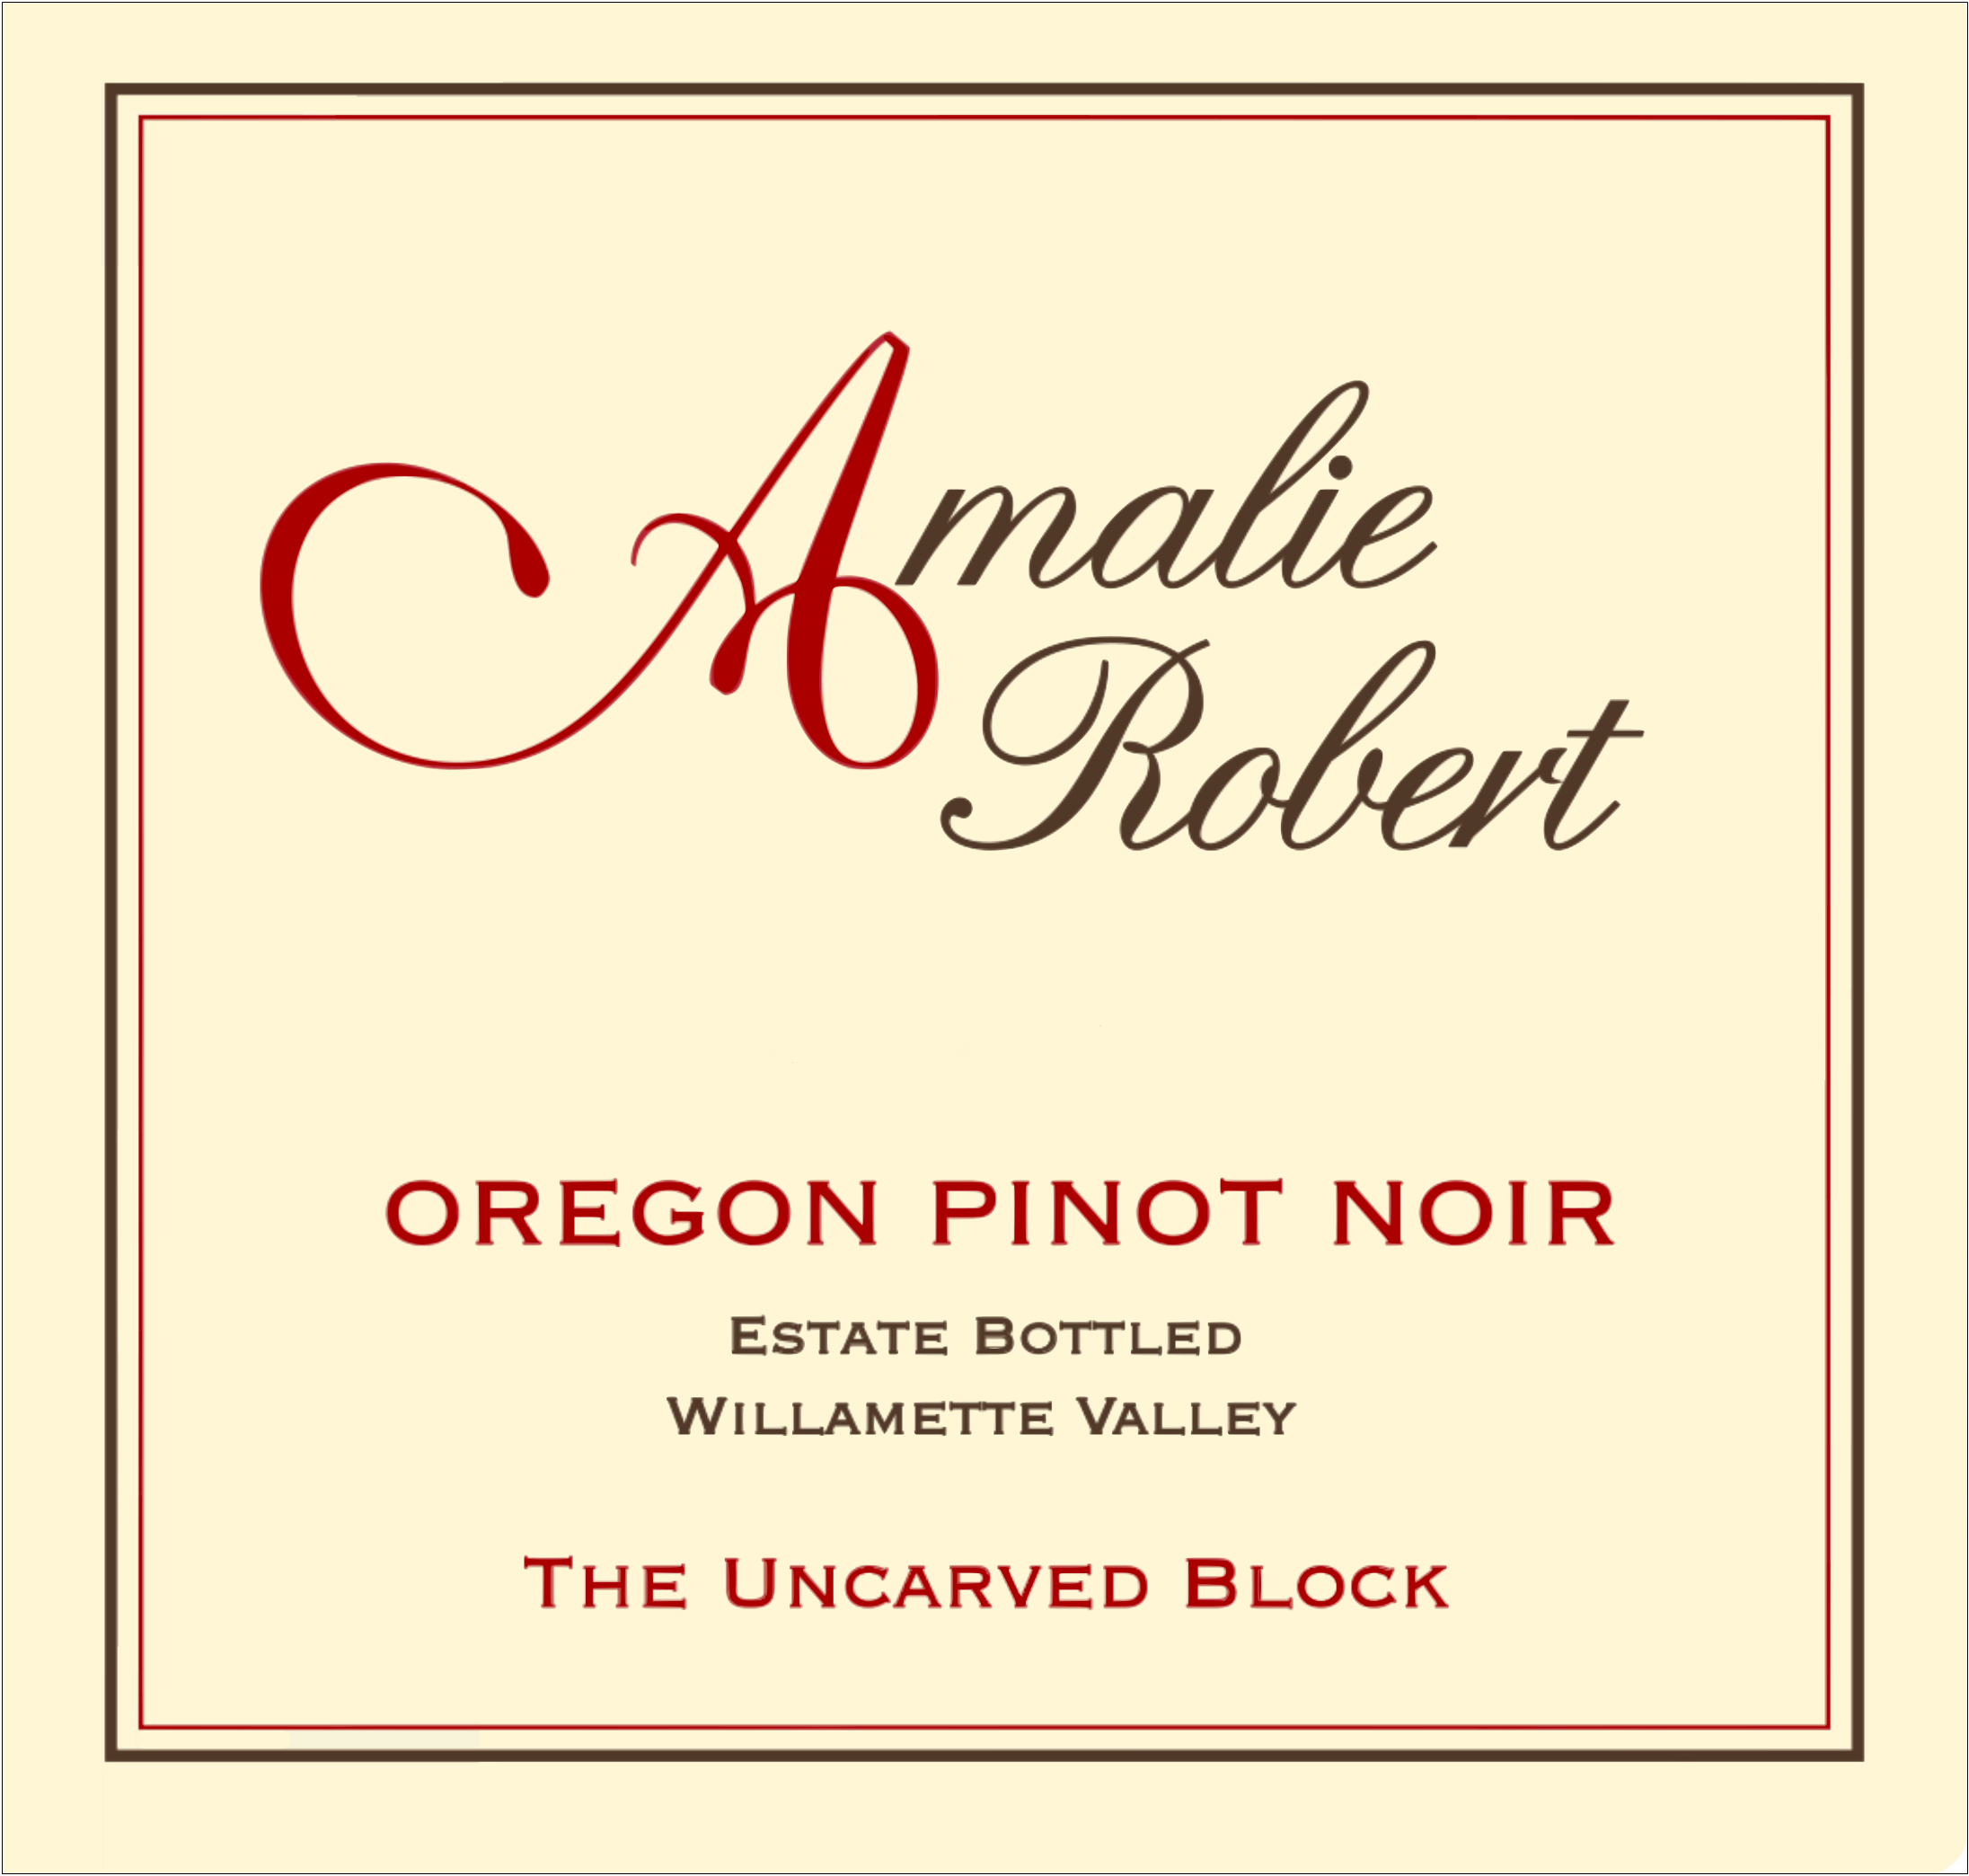 2013 The Uncarved Block Pinot Noir